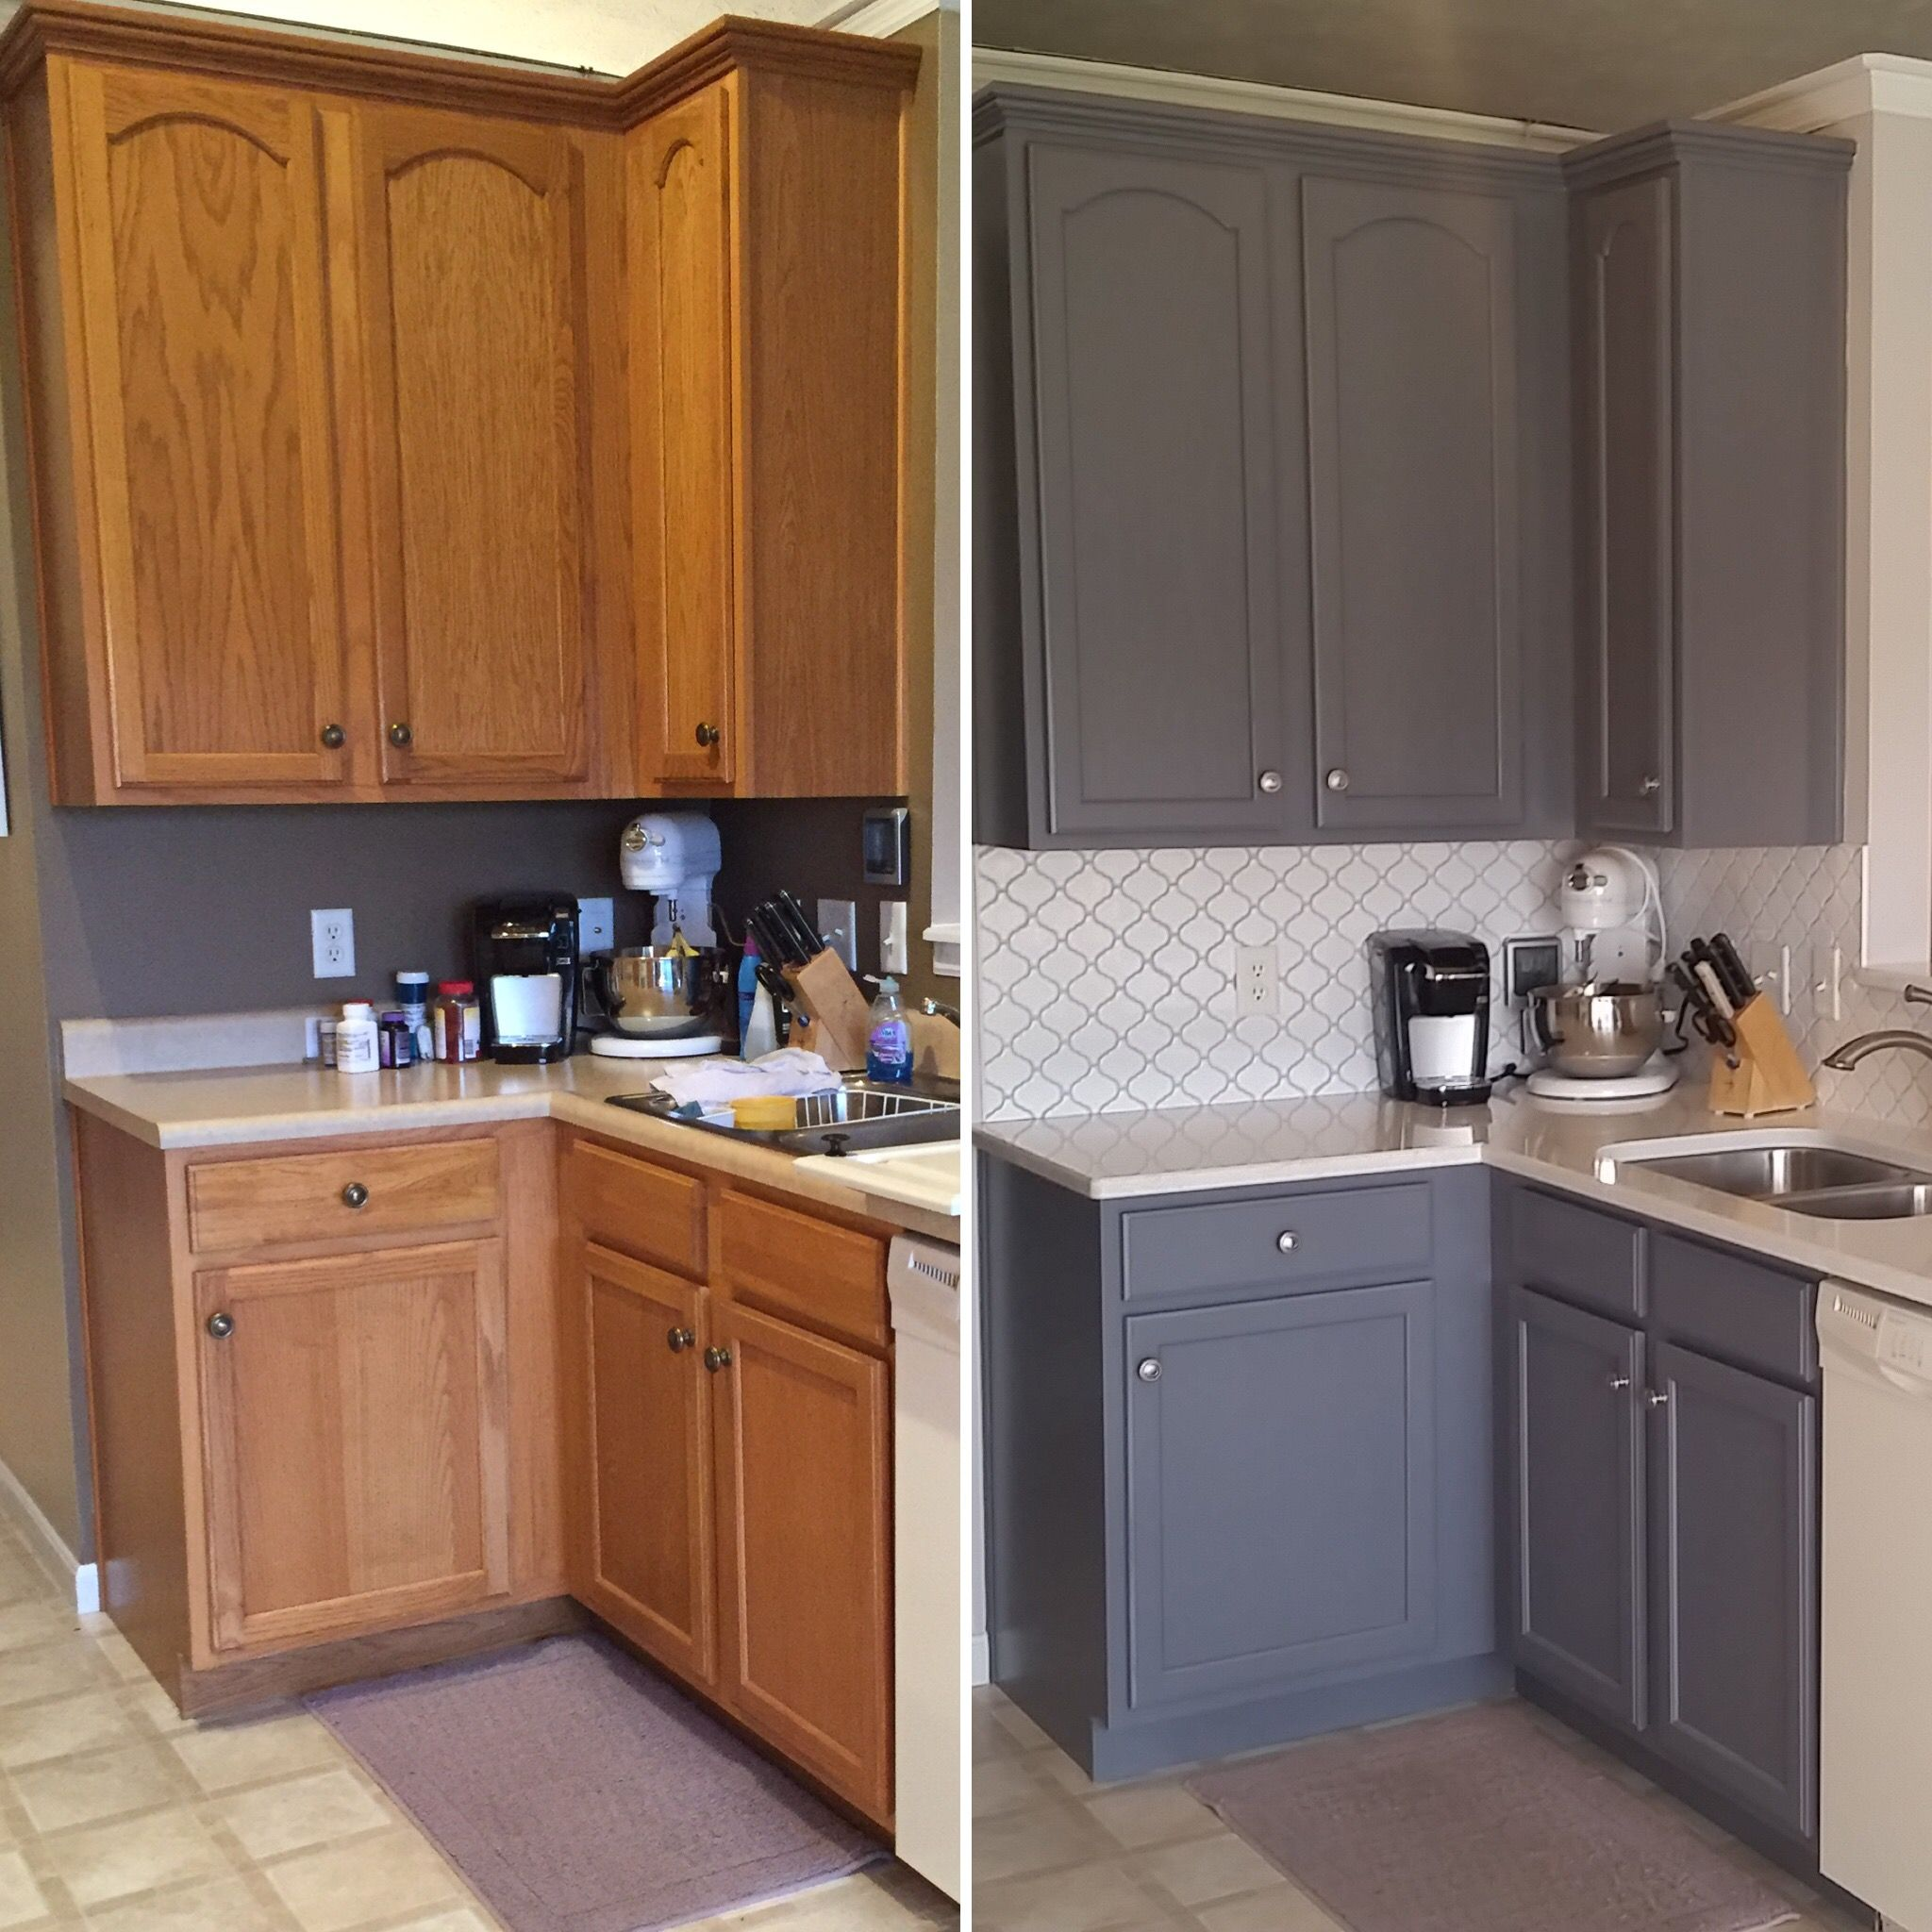 Updated Oak Kitchens Kitchen before and after